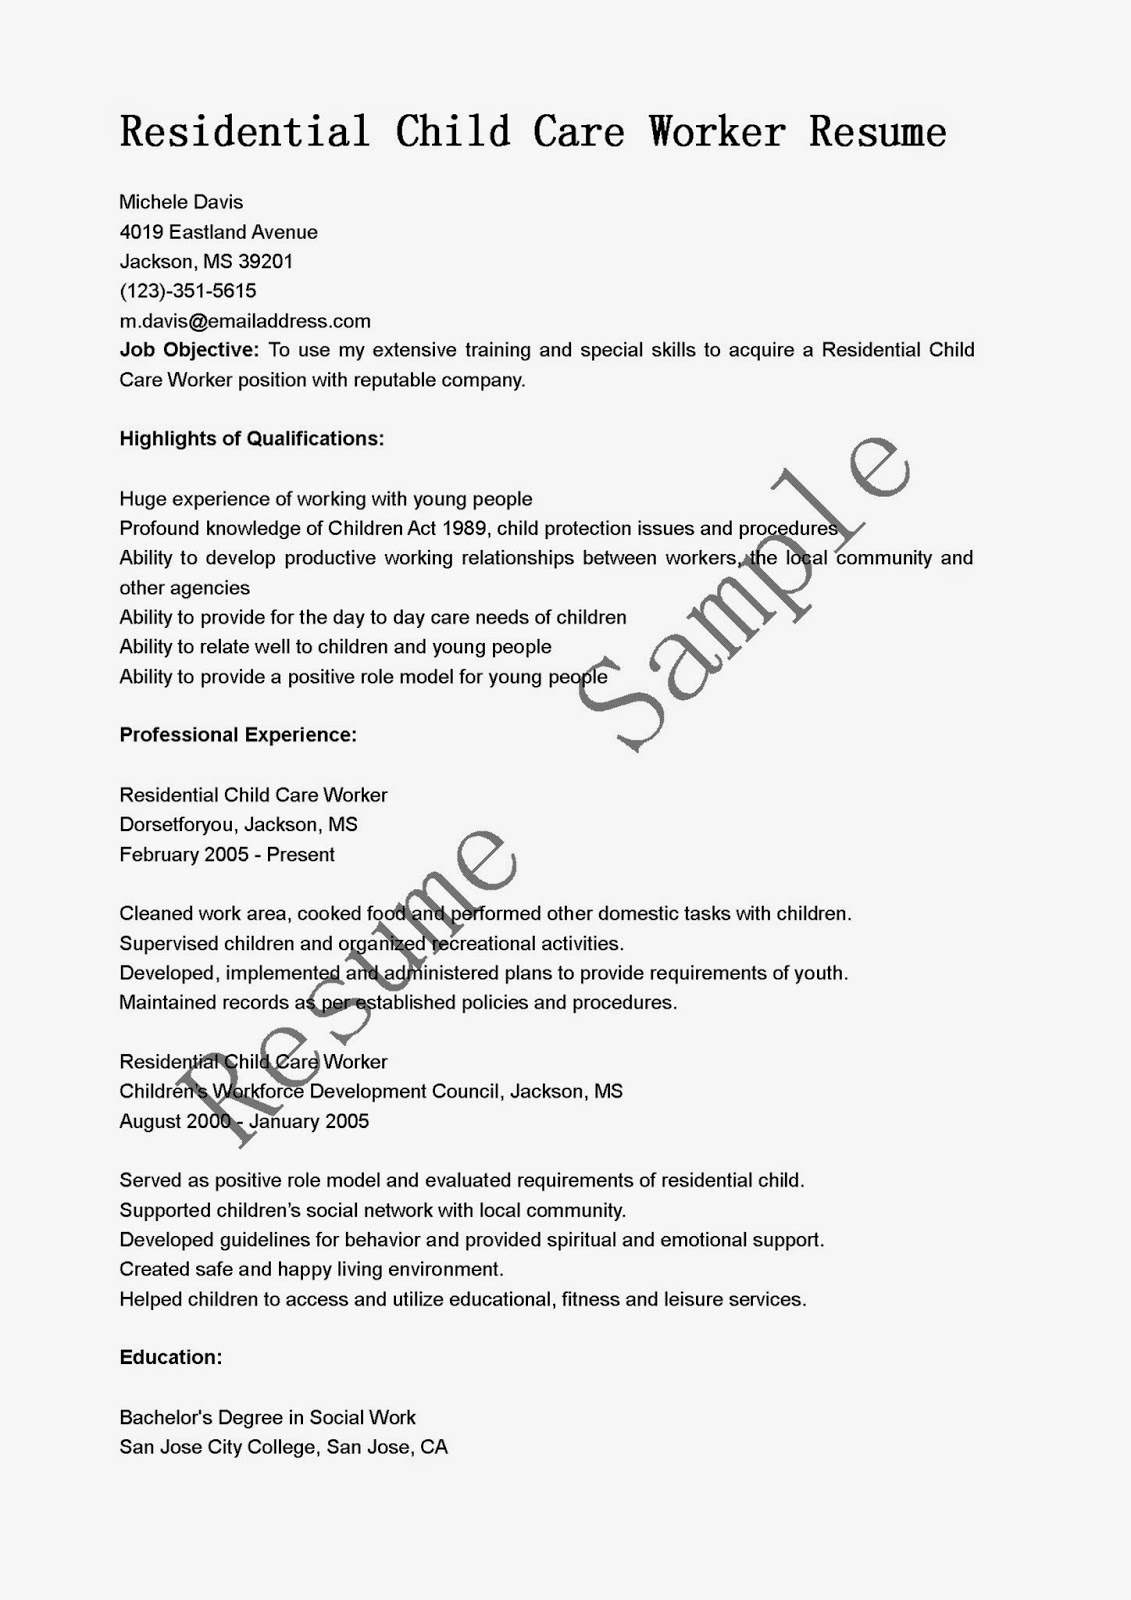 100 resume for maintenance worker custom dissertation